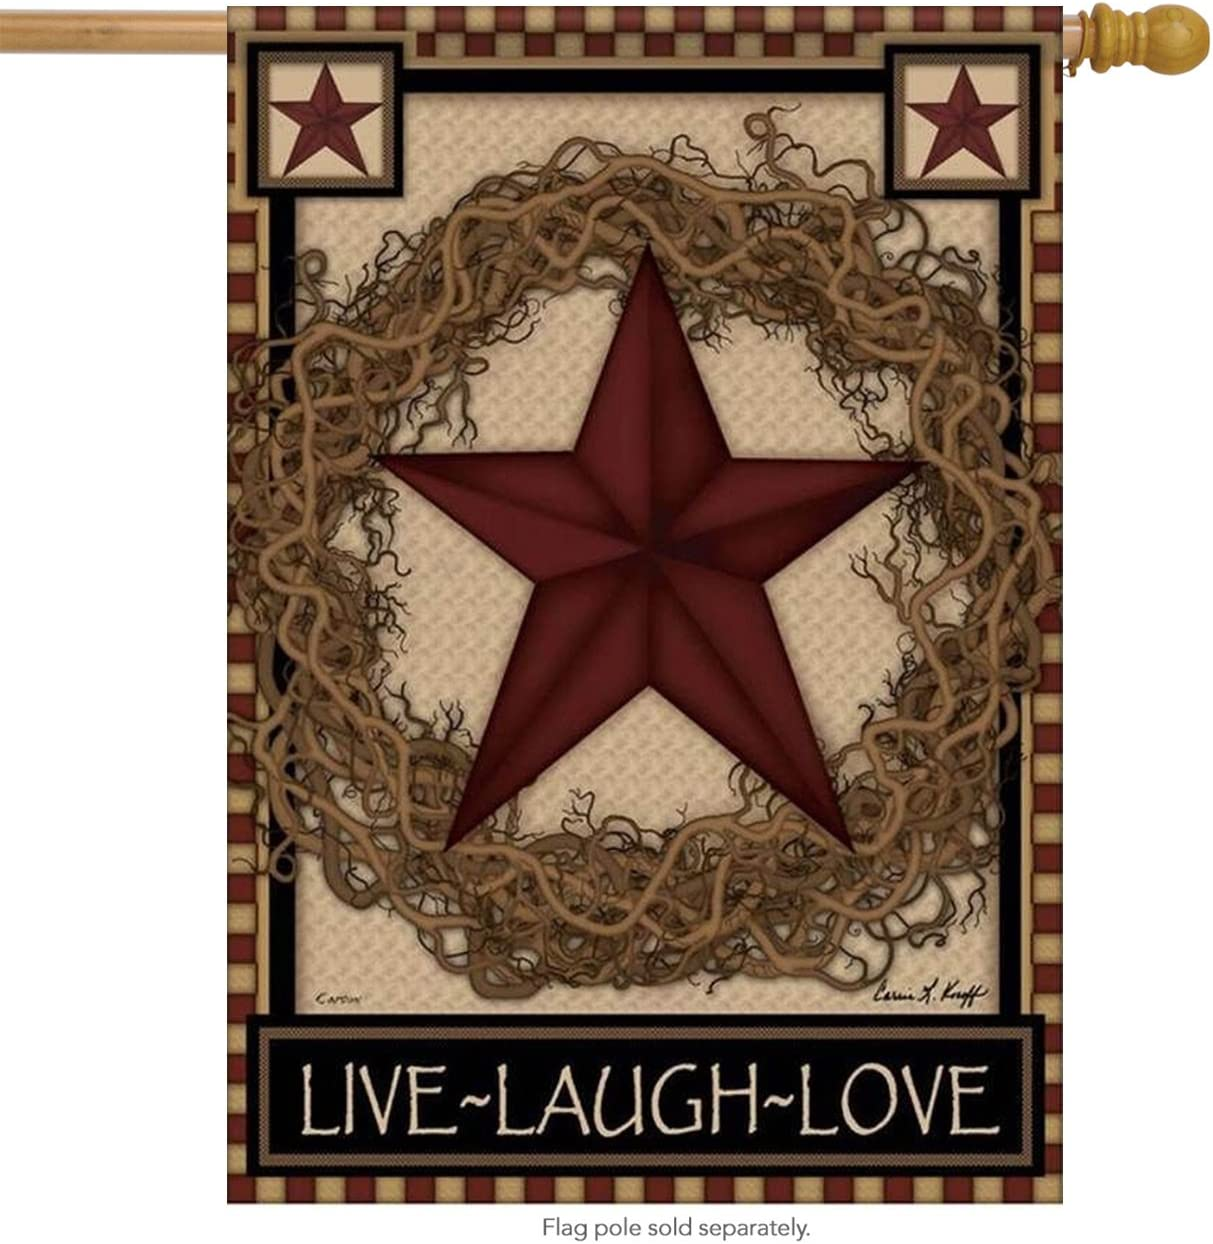 Carson Country Primitive Barn Star Wreath Live Laugh Love Double Sided House Flag